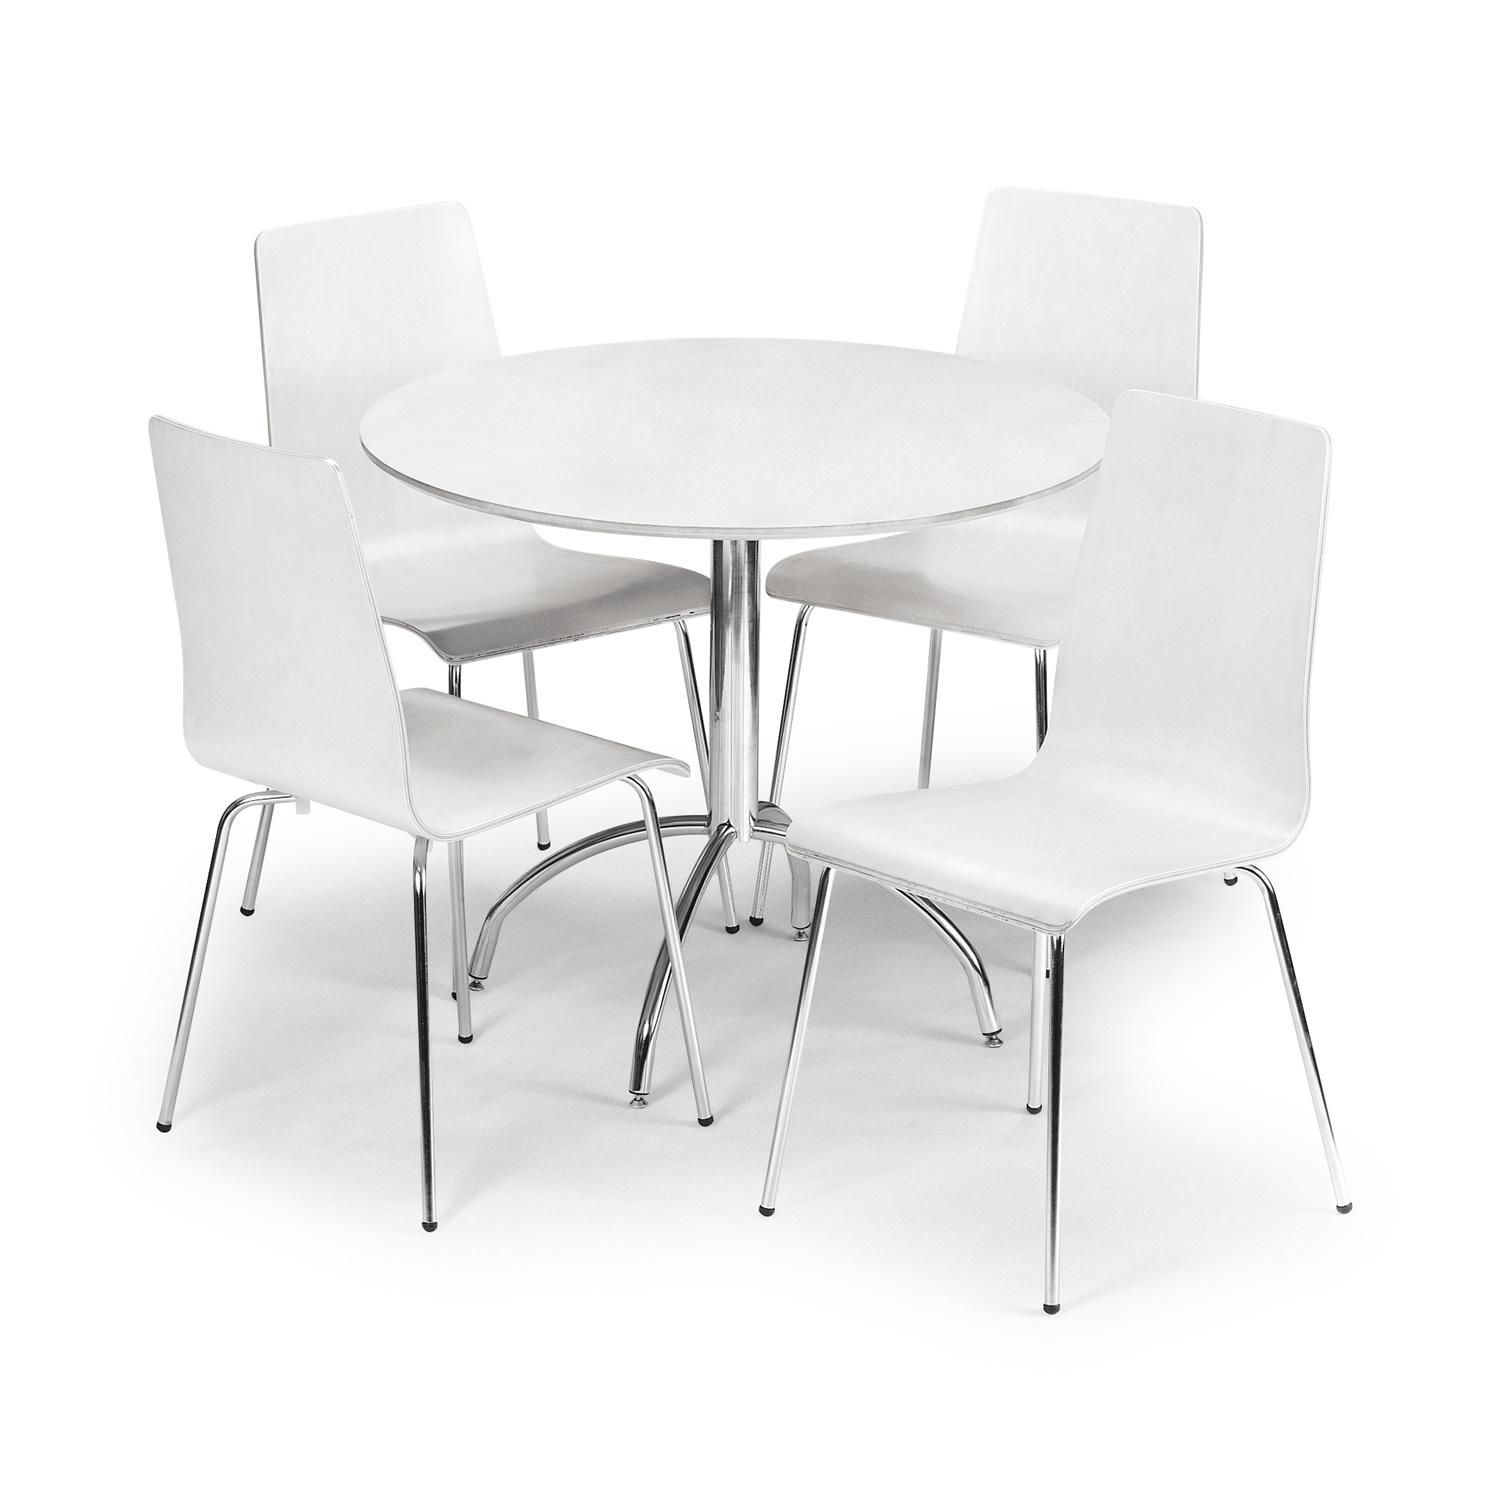 Enjoyable Mandy White 90Cm Round Dining Table With 4 Chairs Next Day Dailytribune Chair Design For Home Dailytribuneorg